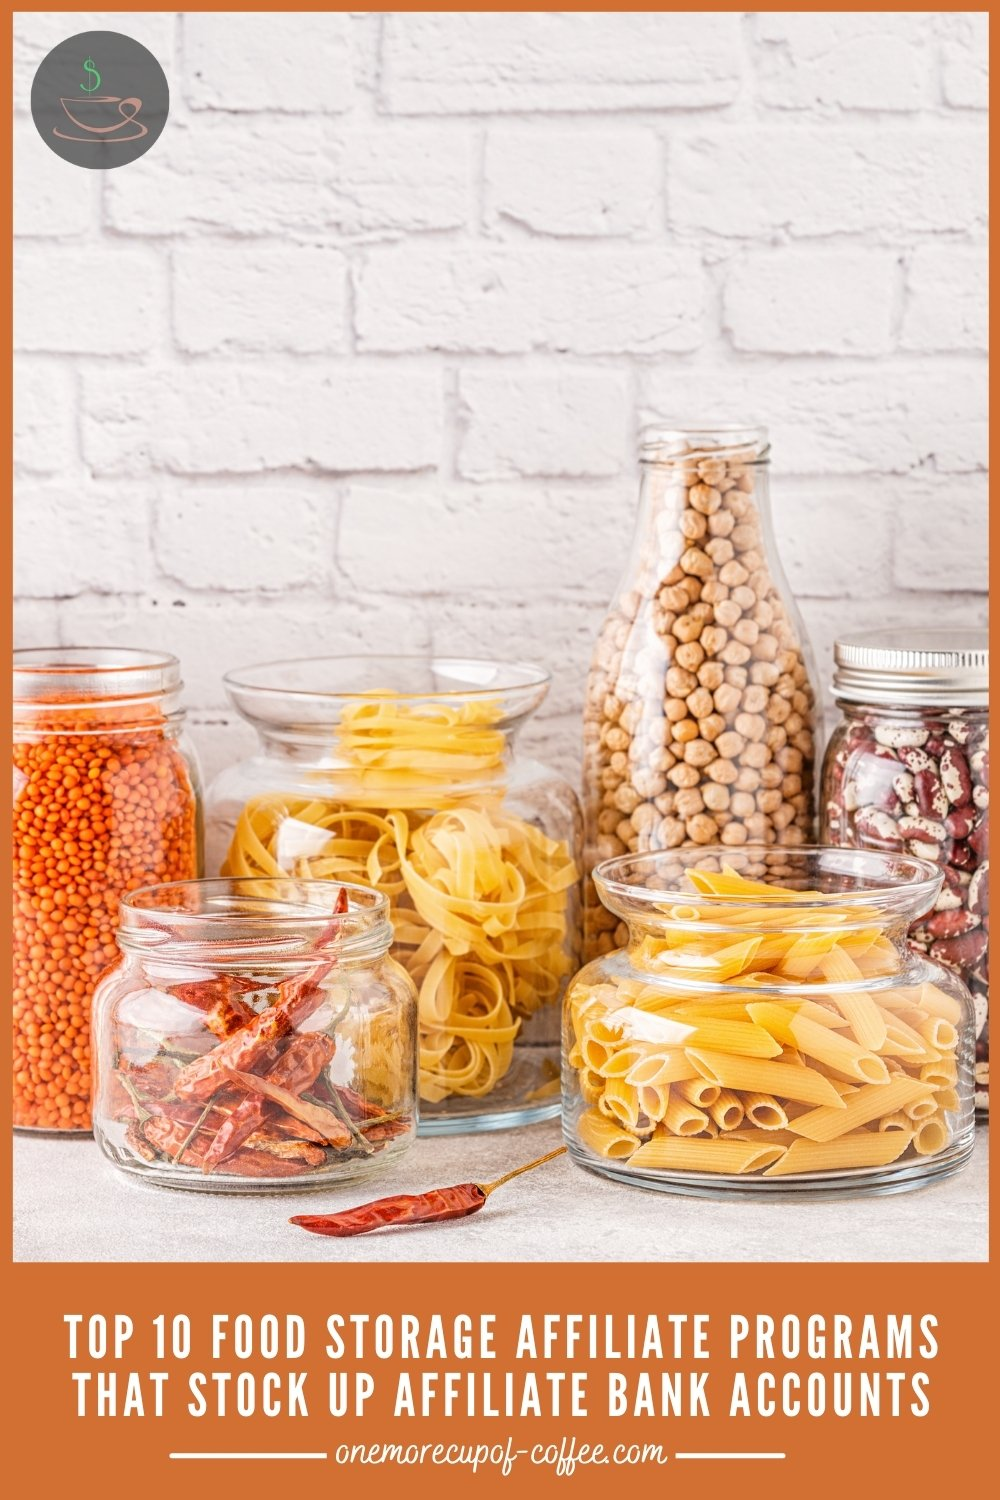 """different foods in assorted jars, lined up against a white brick wall, with text overlay """"Top 10 Food Storage Affiliate Programs That Stock Up Affiliate Bank Accounts"""""""